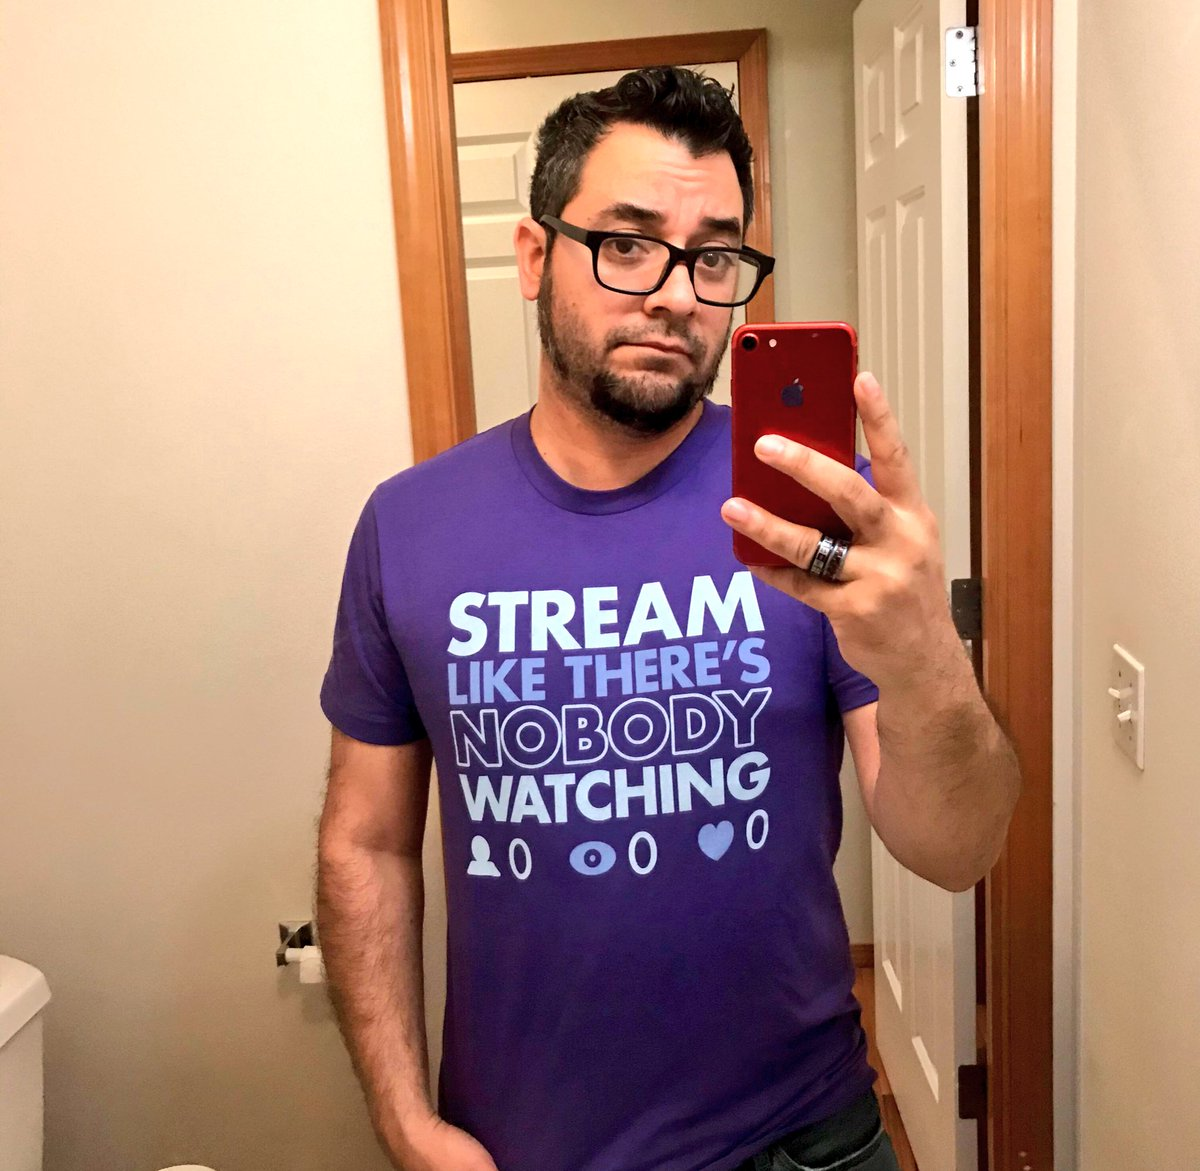 Finally got a shirt that represents my #Twitch channel perfectly. #SmallStreamer https://t.co/TkQ9vHQoqW